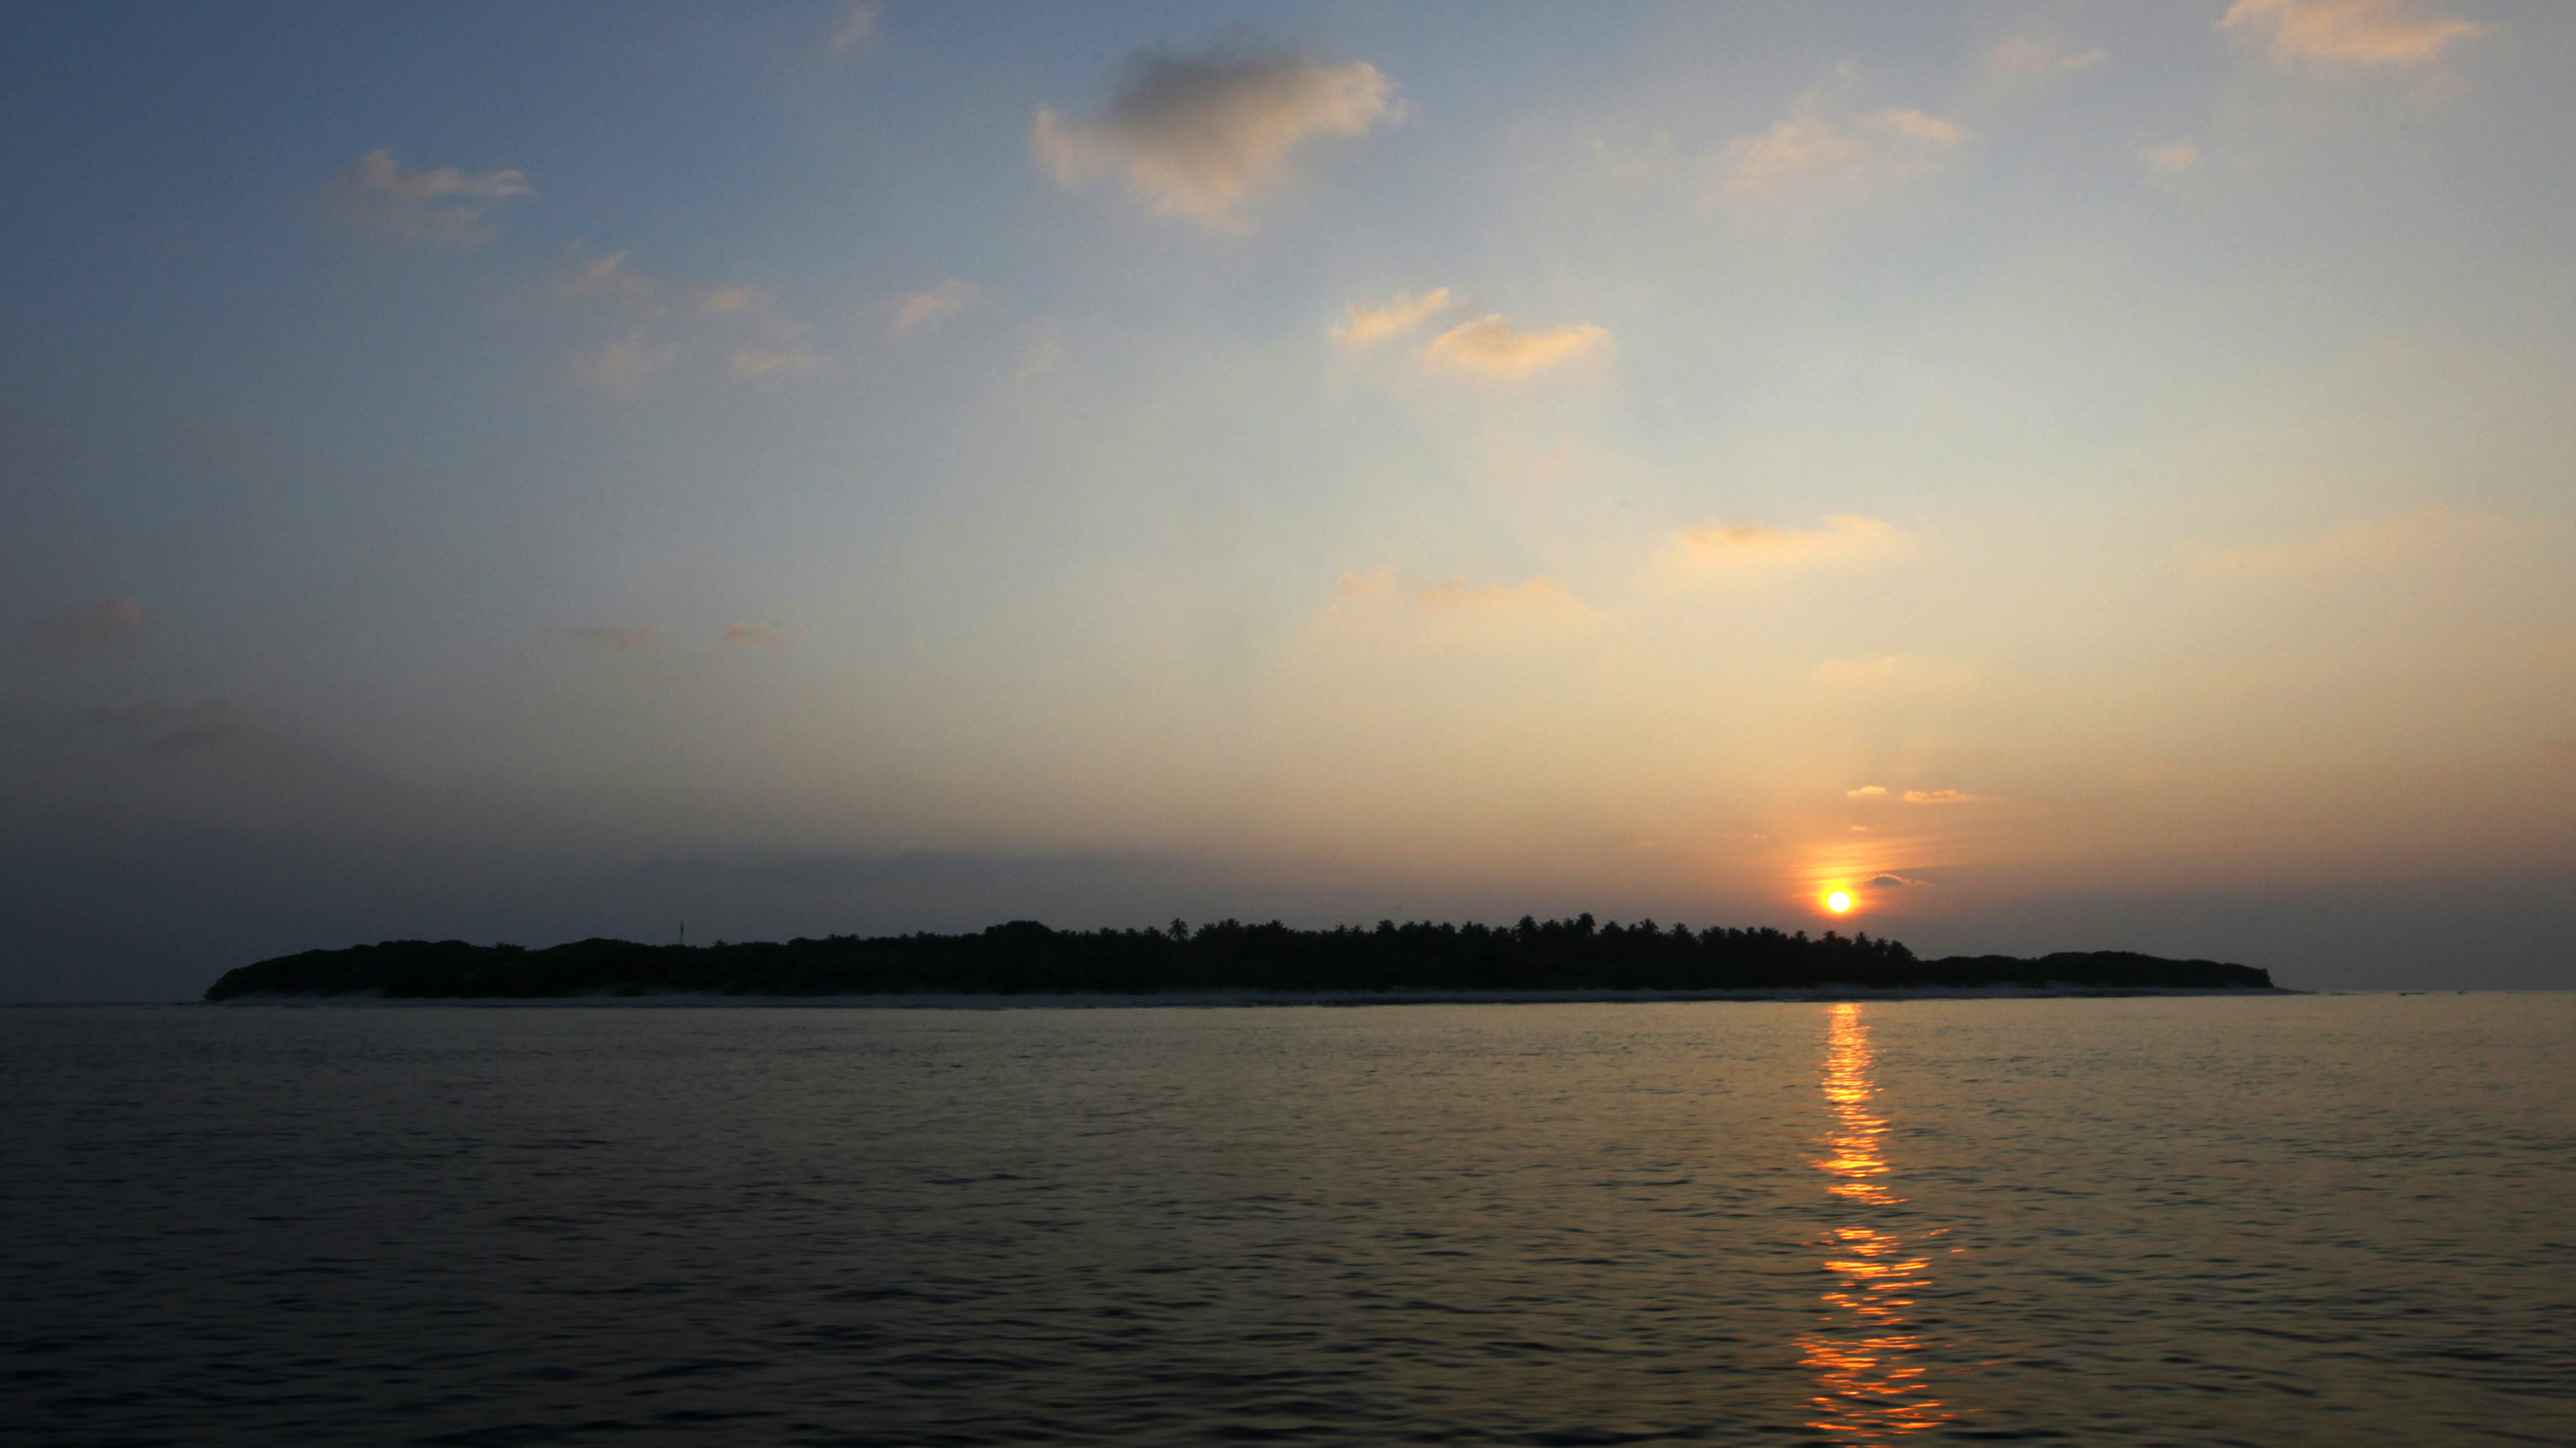 The sun rises over an island at Har Alif Atoll December 12, 2009